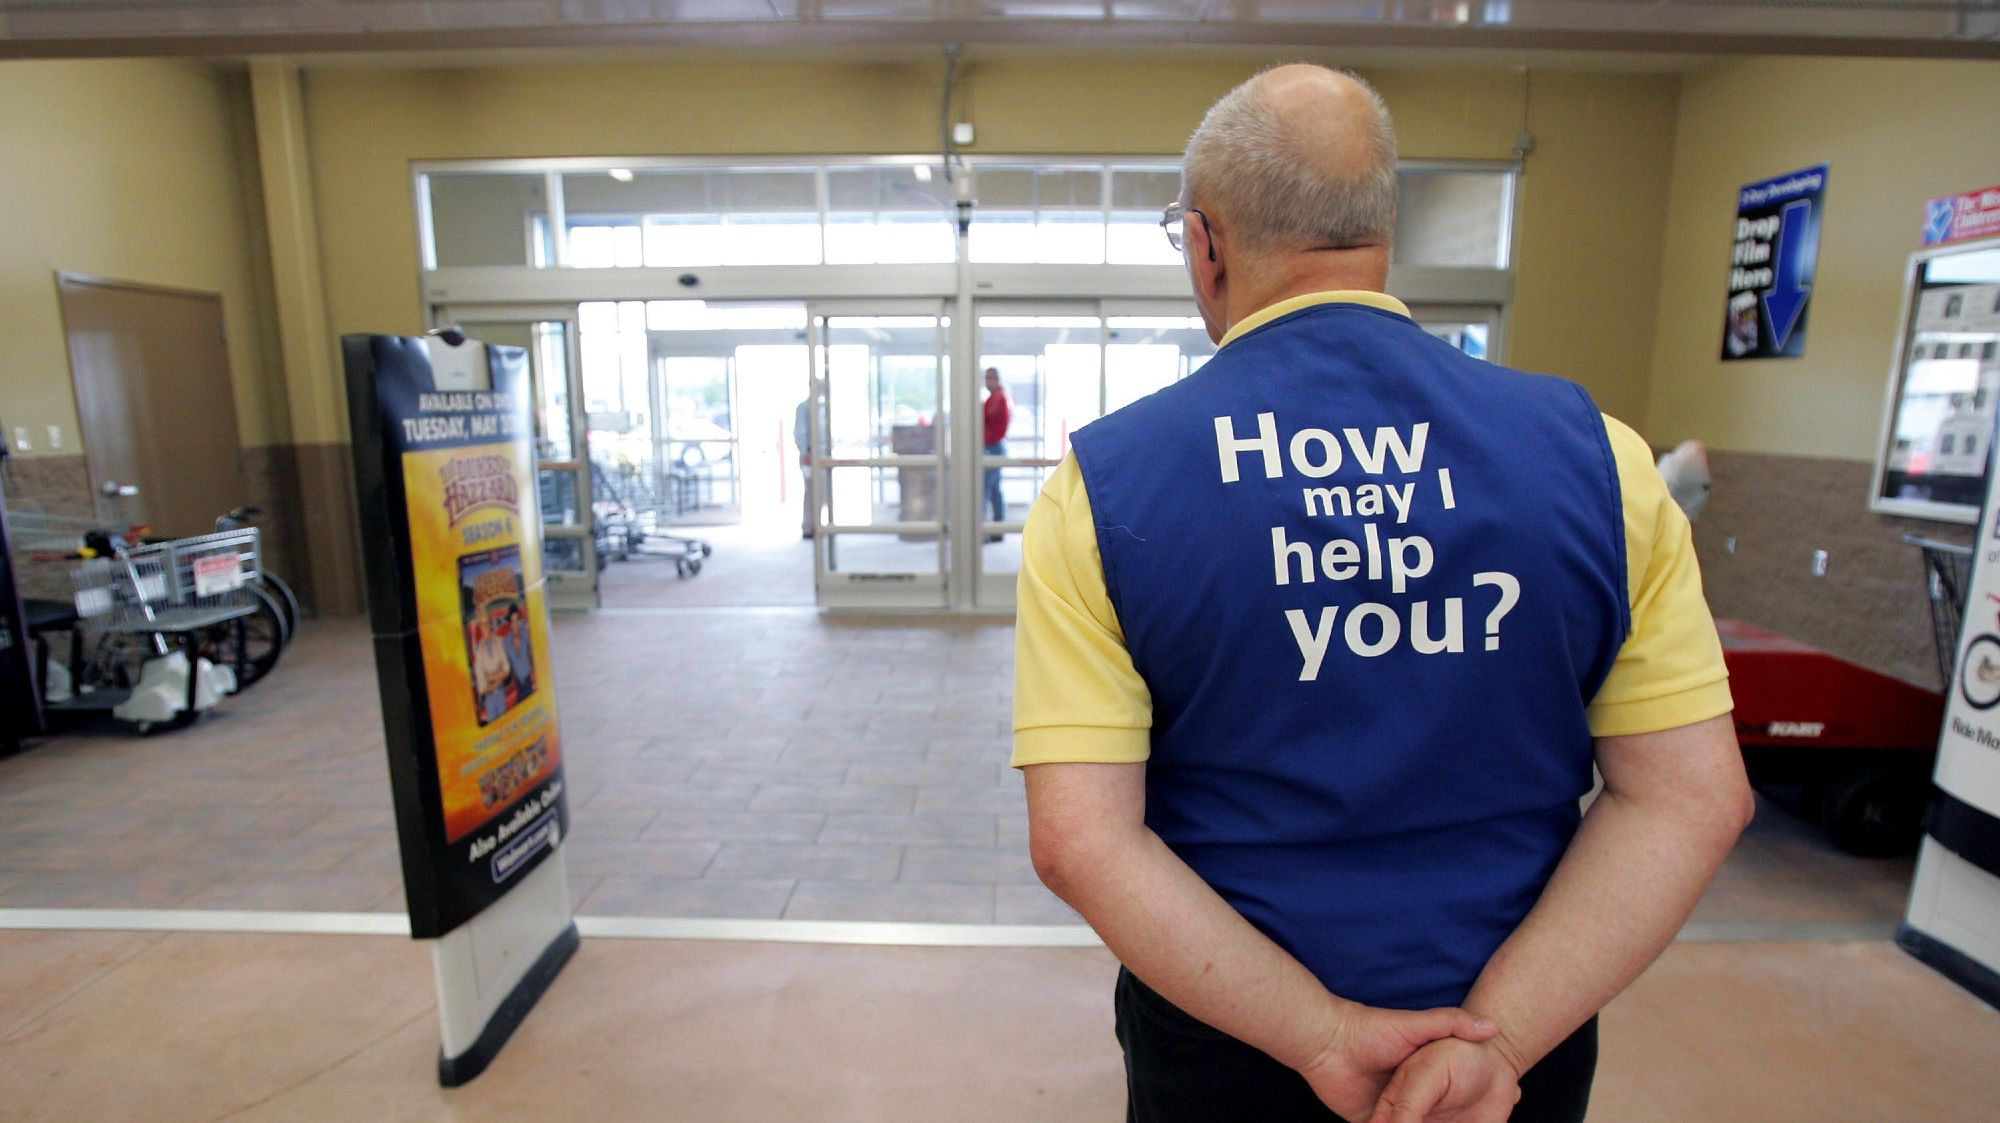 The Reason Why Walmart and Other Retail Stores Put Greeters at the Door